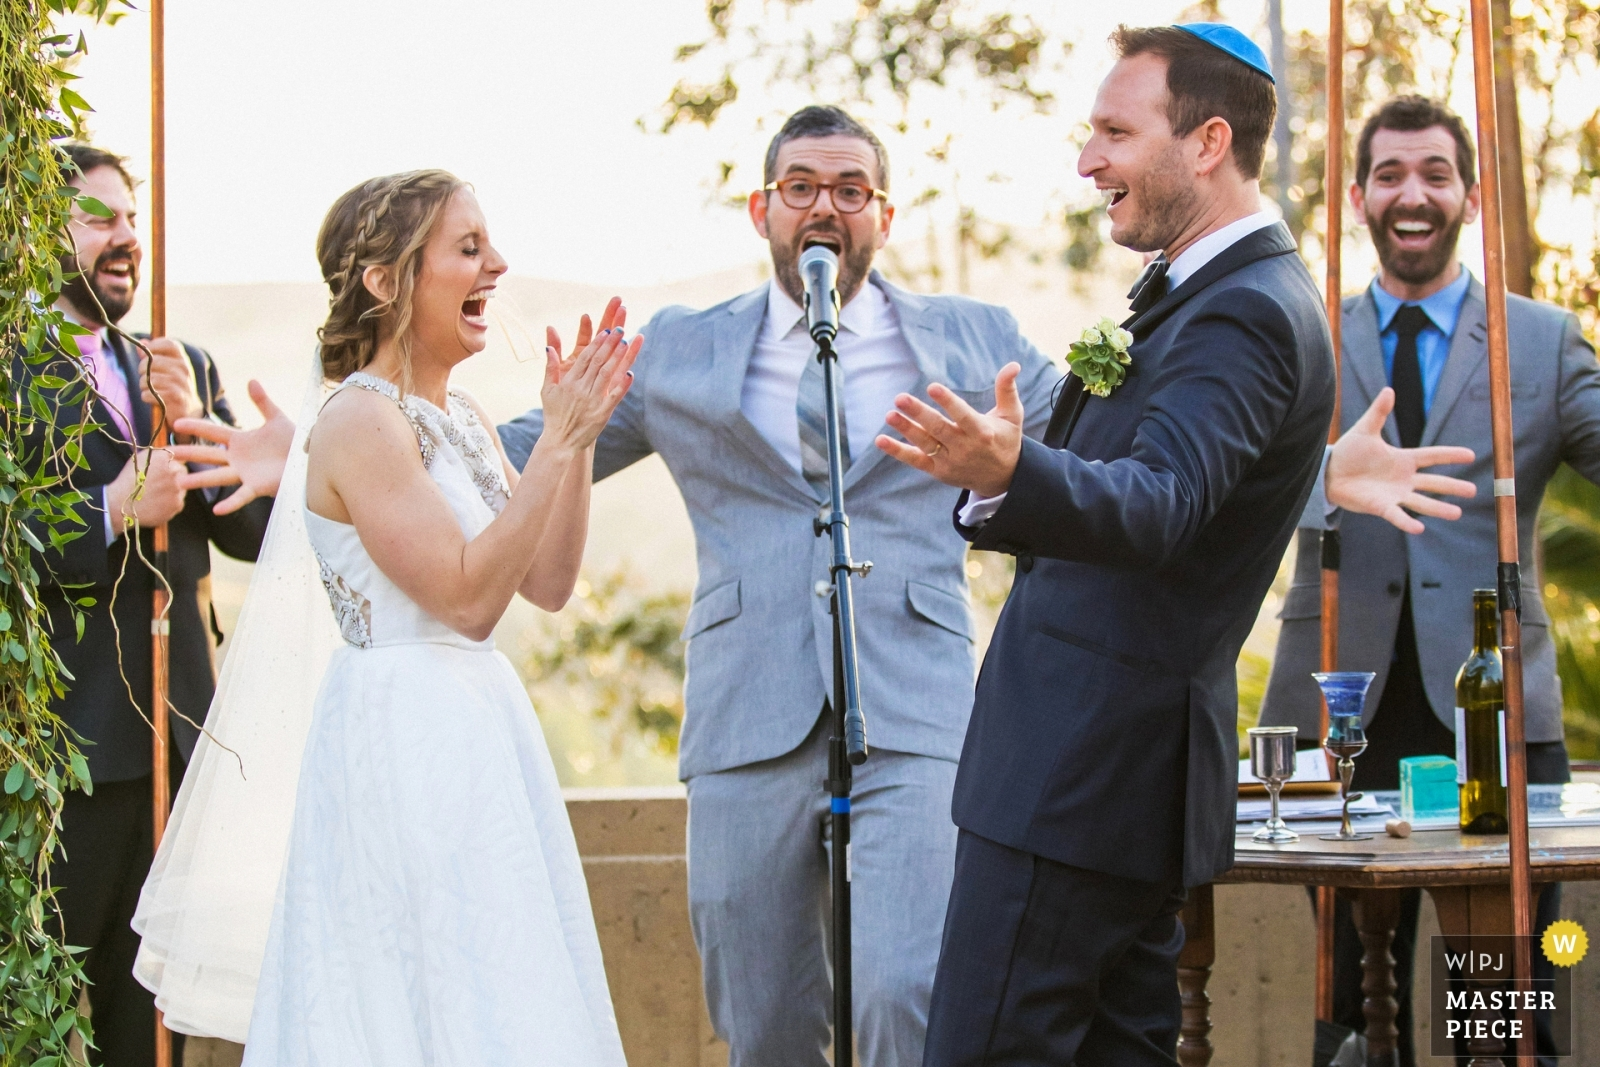 The newly-married couple celebrates with their rabbi and relatives under the jewish chuppah. - Los Angeles, California - Southern Wedding Photography -  | The Brandeis-Bardin Campus of American Jewish University, Brandeis, California